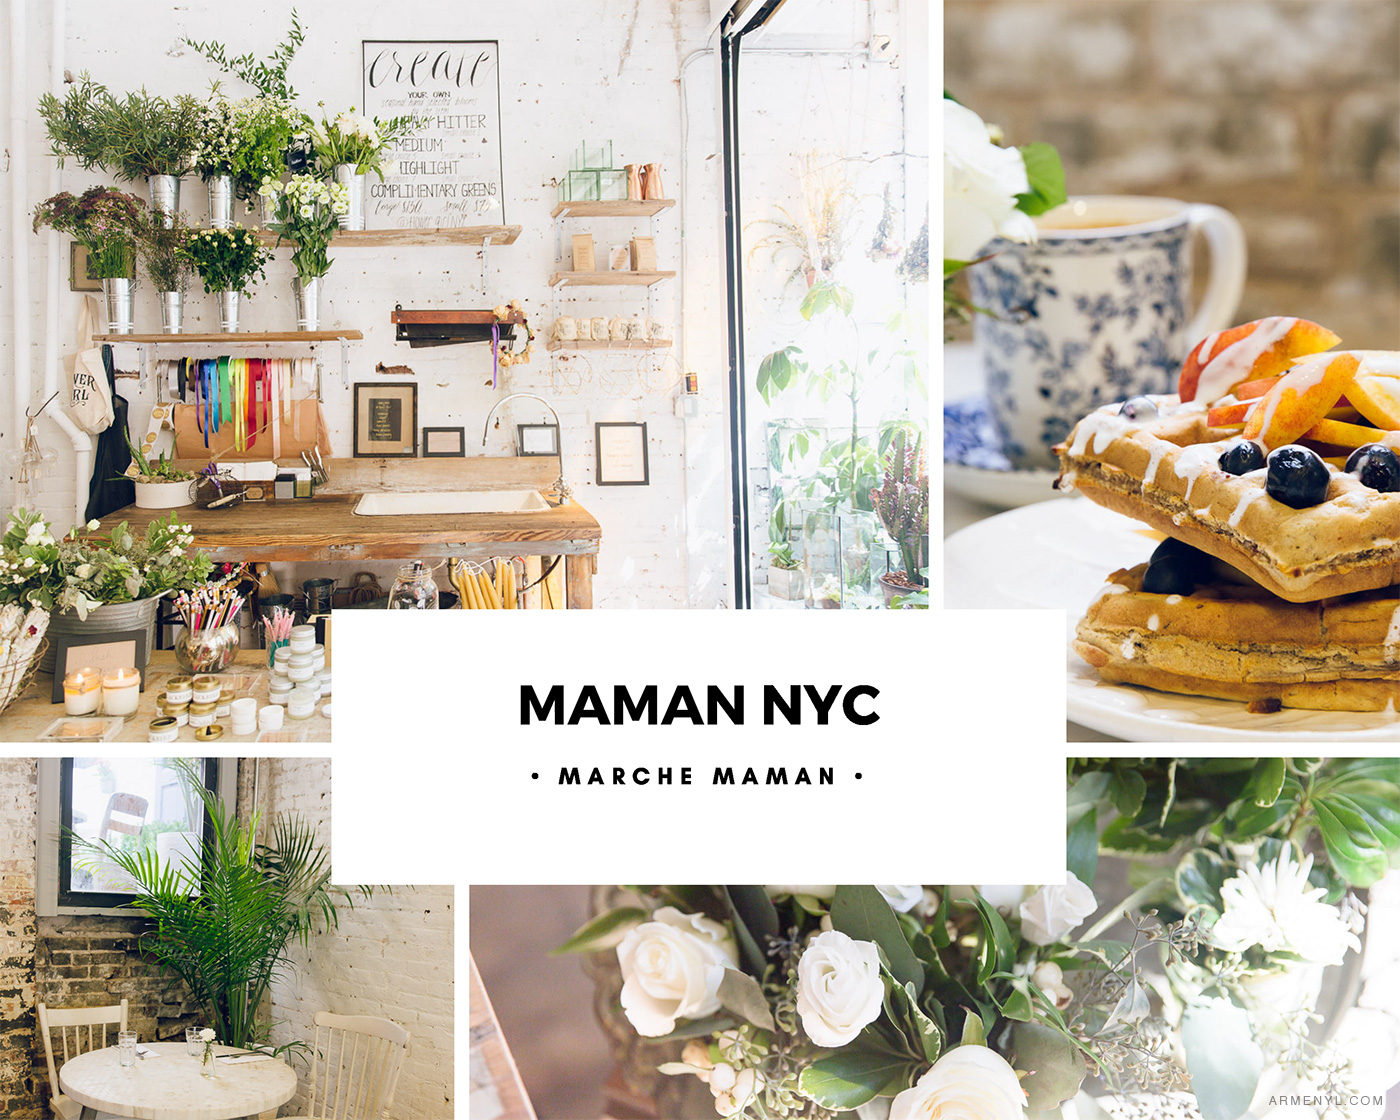 New York City Guide: the most Instagram worthy spots in NYC Featuring Maman NYC photo by Armenyl